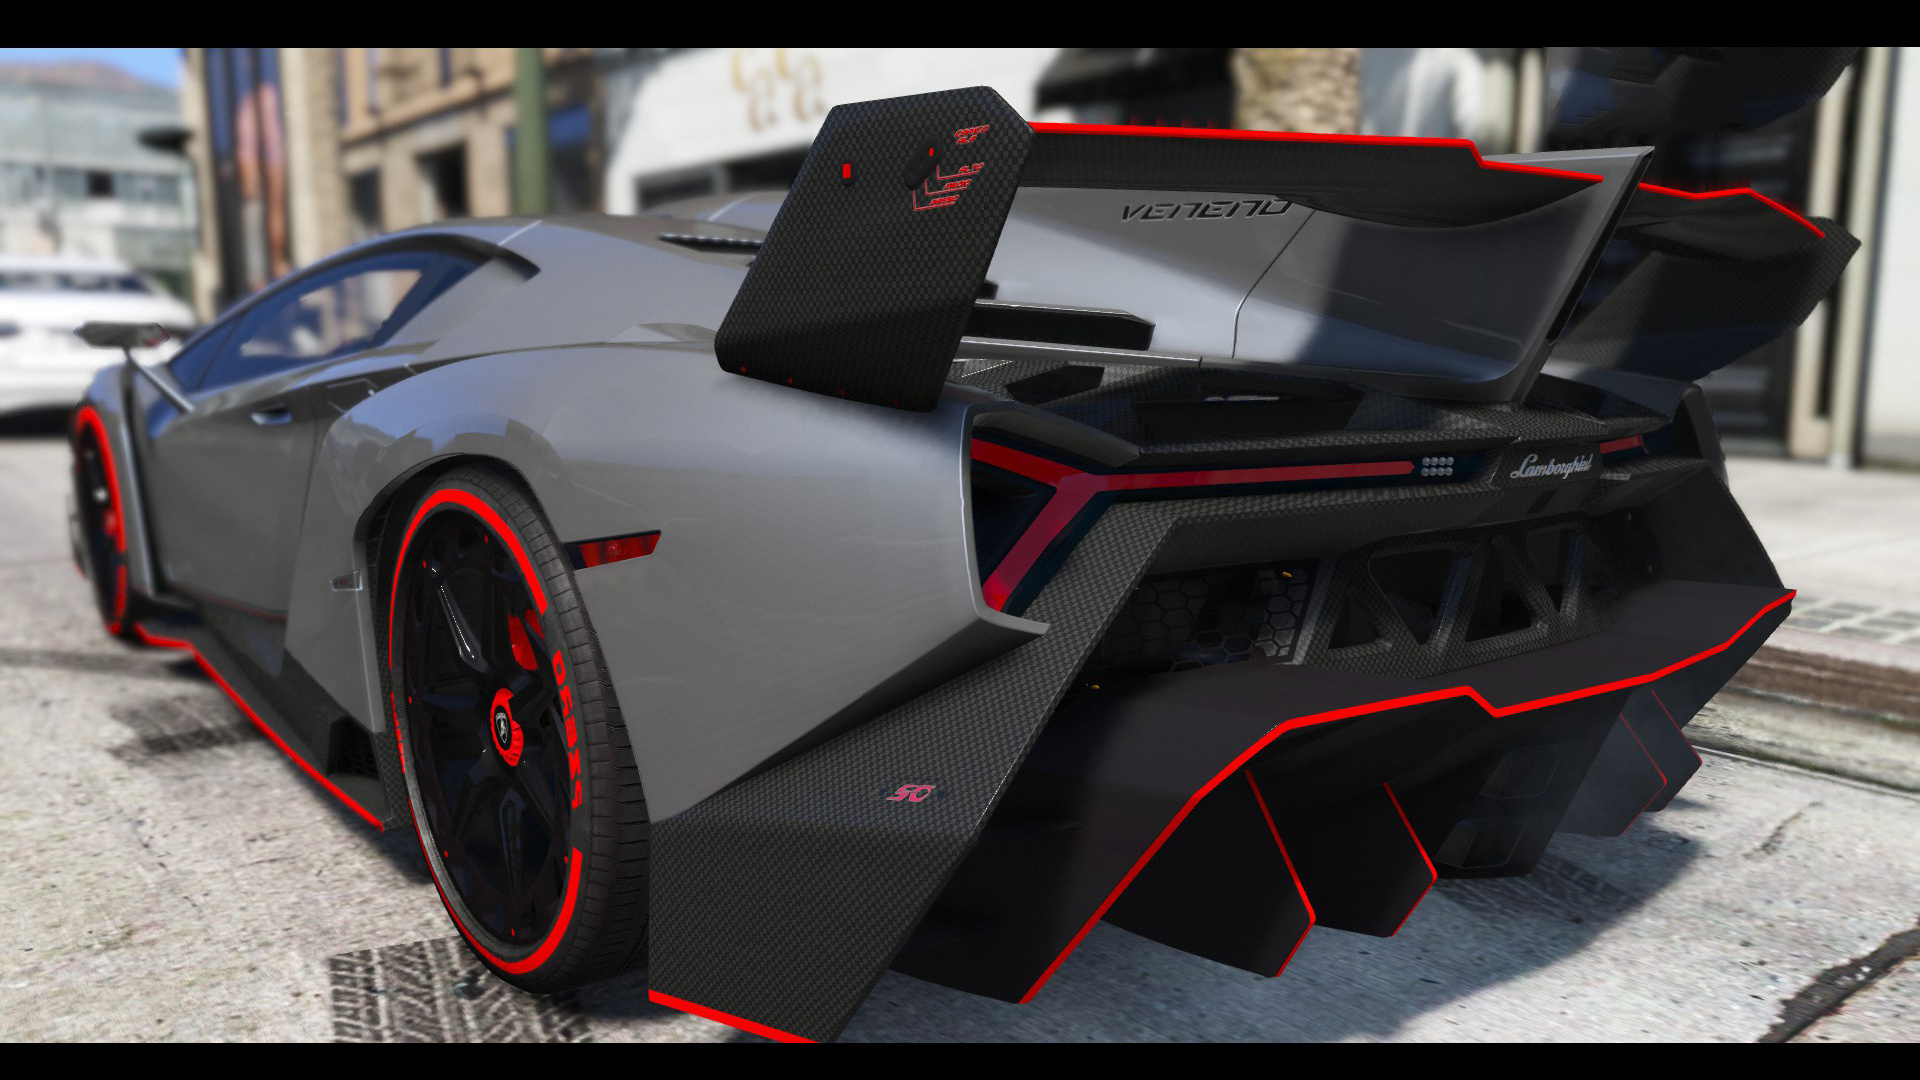 d coration voneno 99 colombes lamborghini veneno. Black Bedroom Furniture Sets. Home Design Ideas